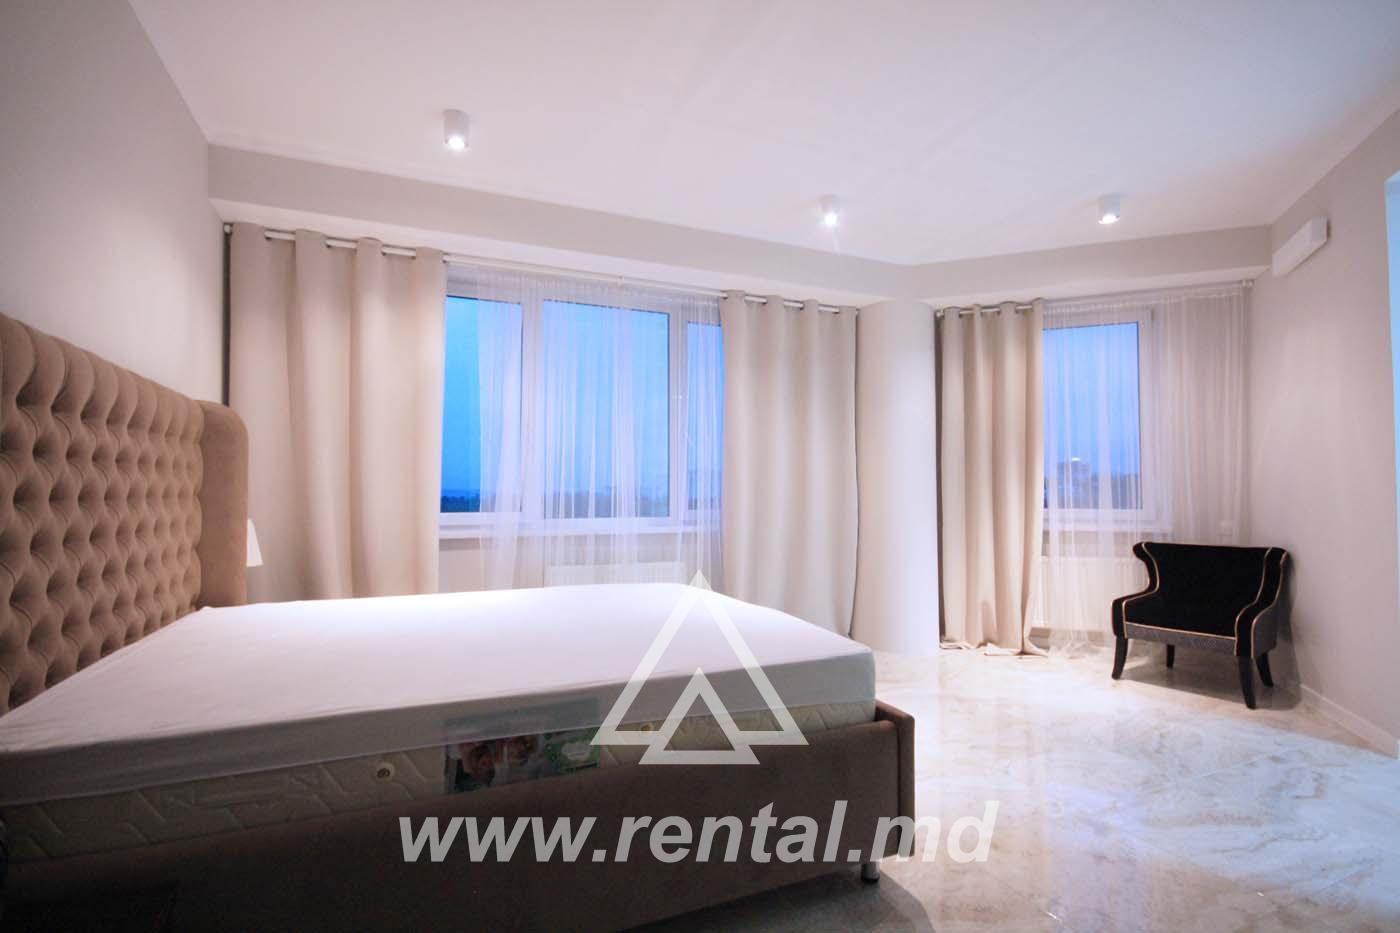 Apartment for rent near MallDova Shopping Center